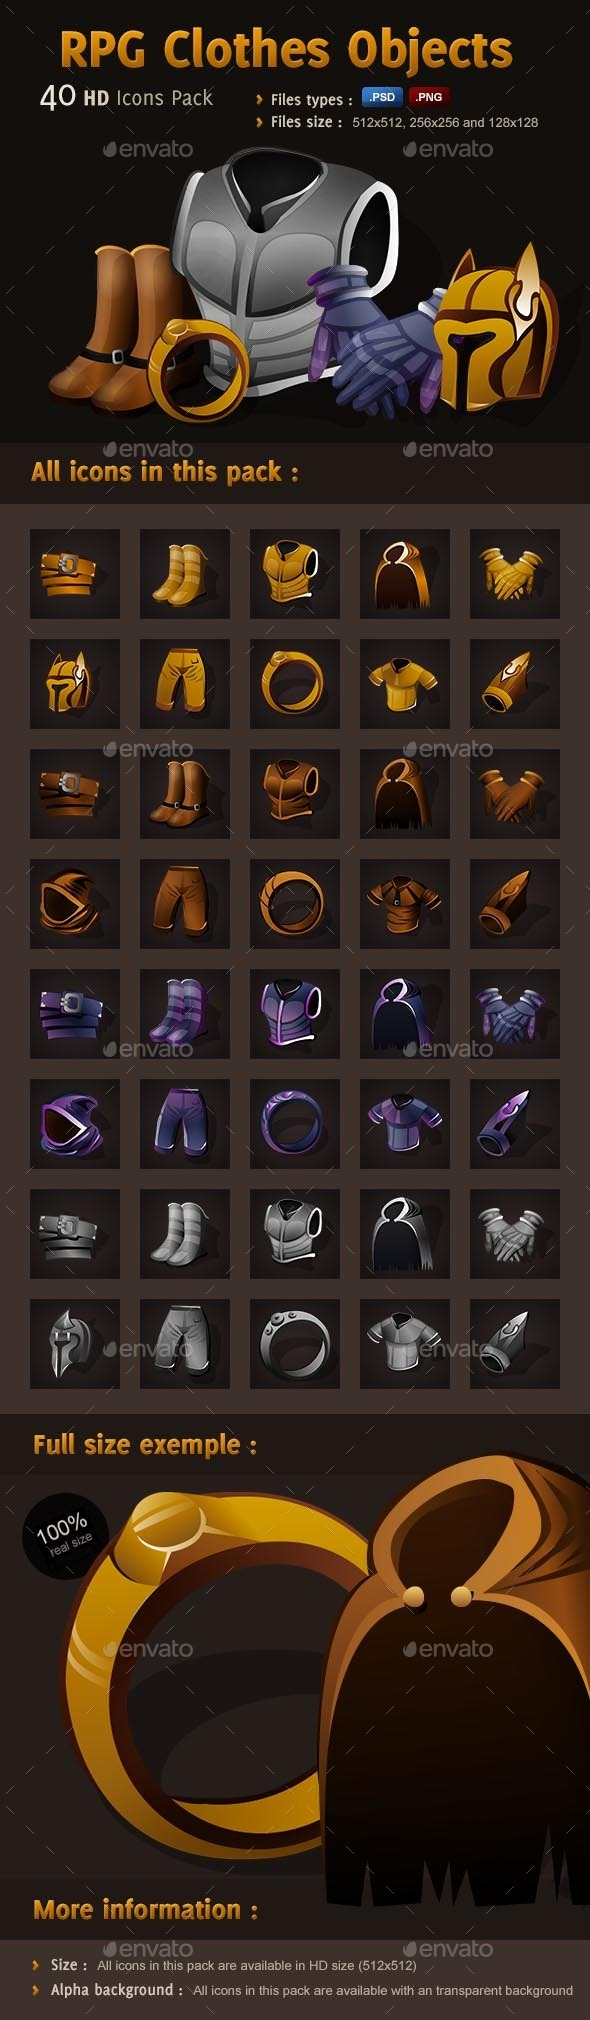 RPG Icons Pack - Clothes Objects - Miscellaneous Game Assets